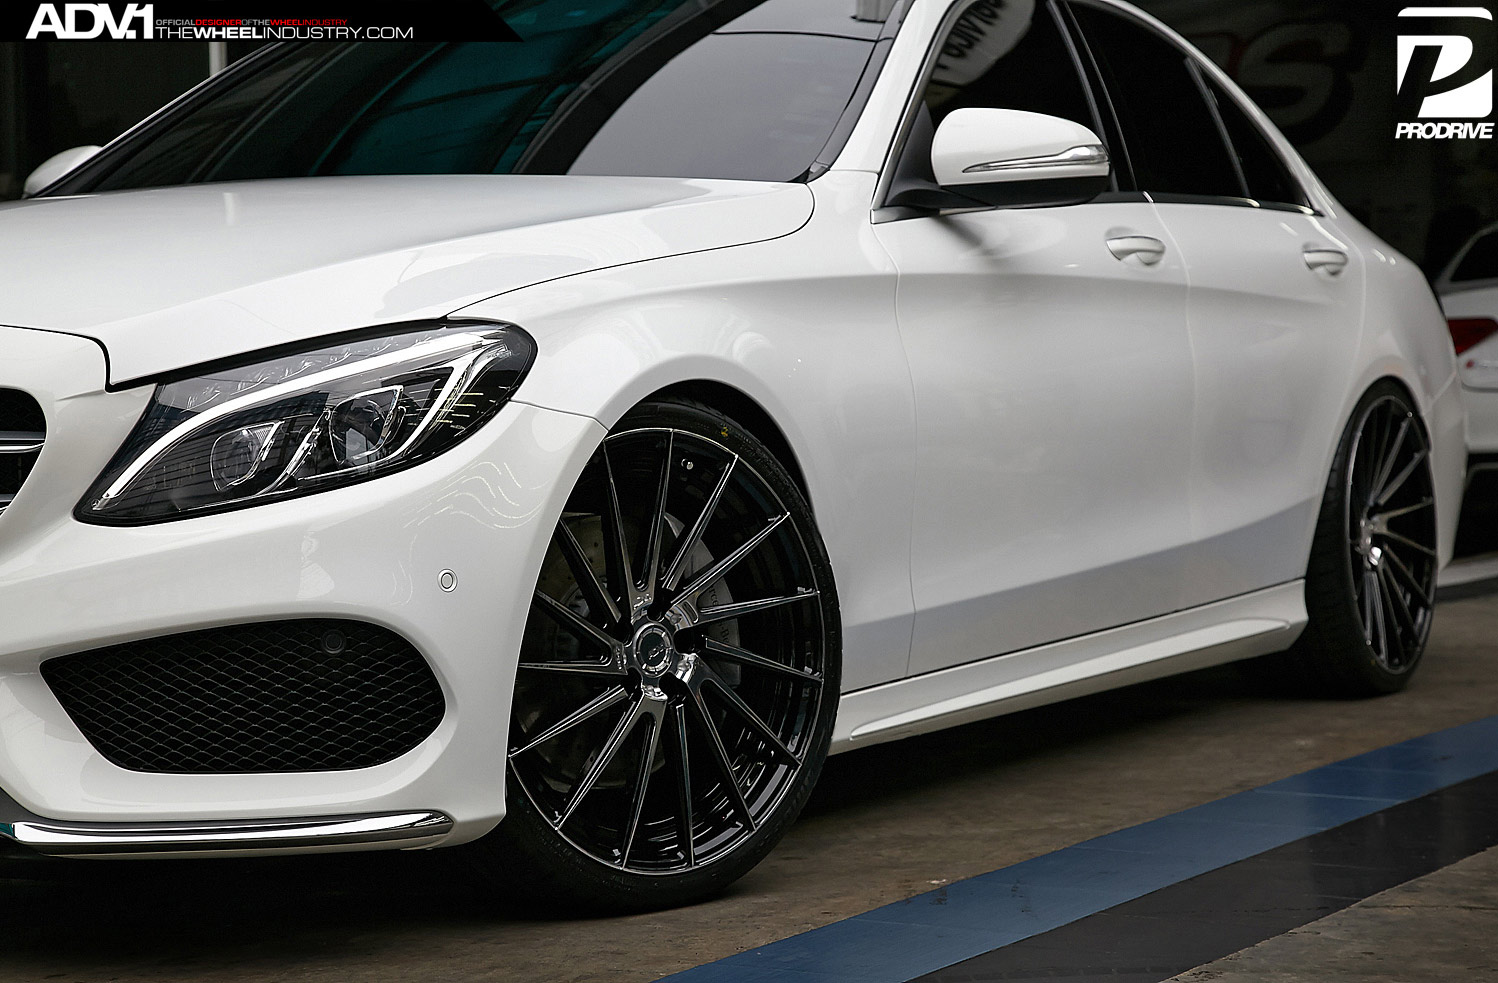 Mercedes benz c class adv15r m v2 sl wheels adv 1 wheels for Mercedes benz c300 rims